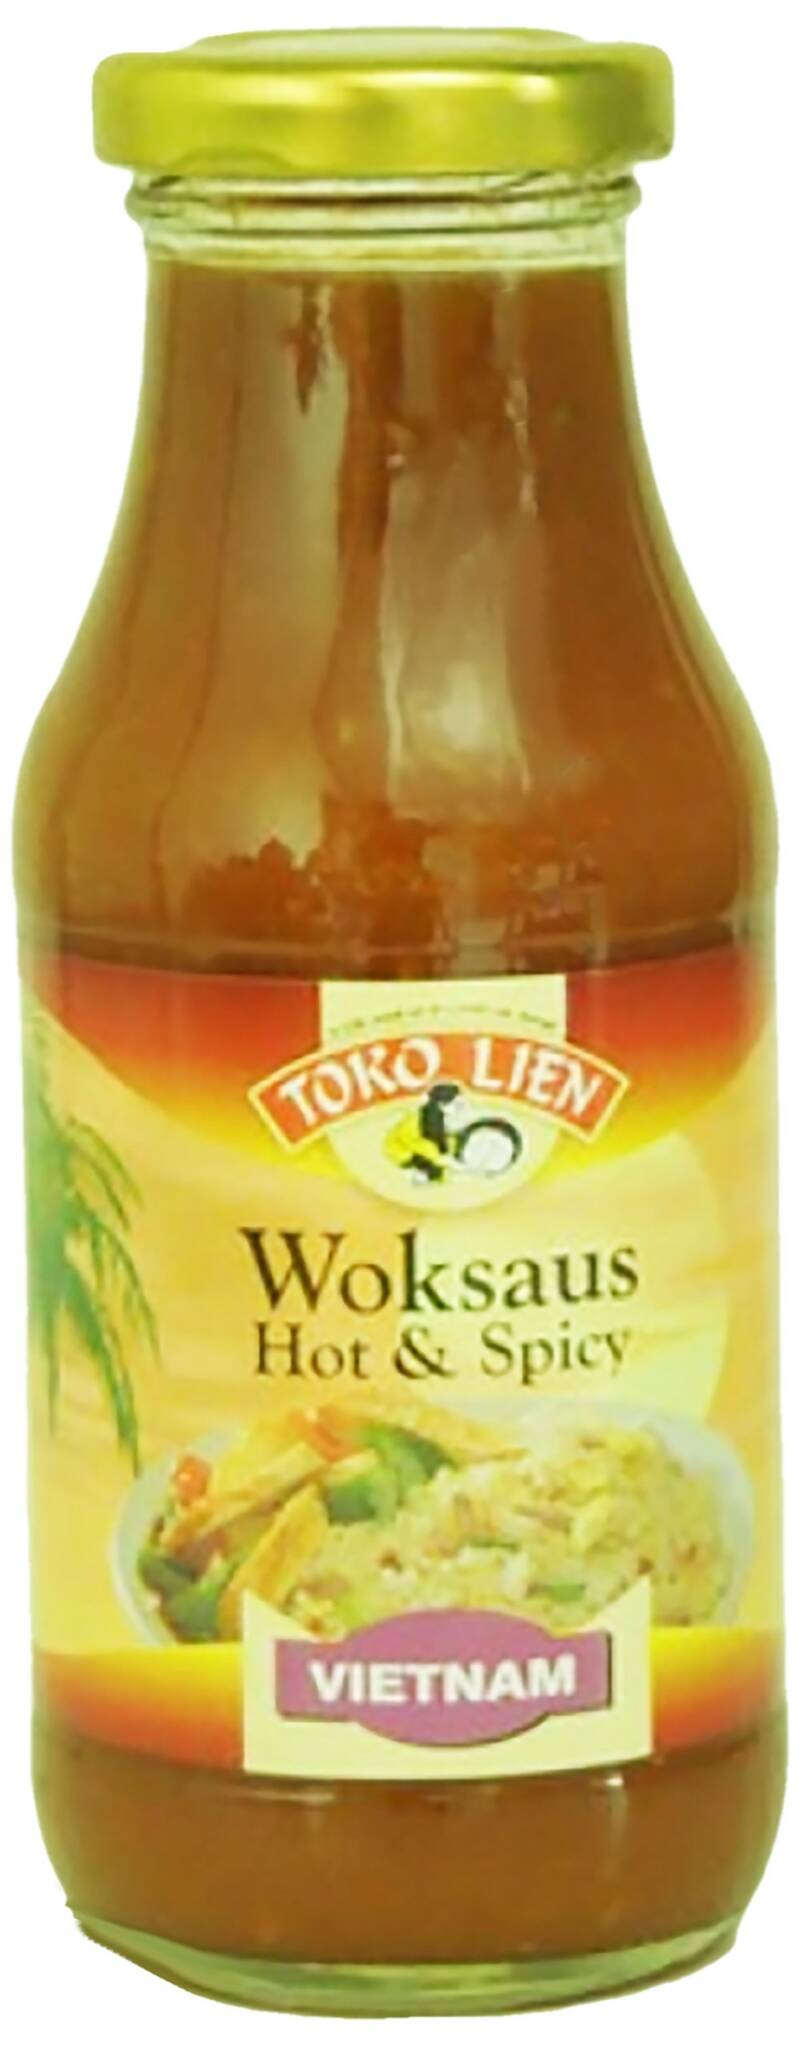 Artnr.537 Vietnamese hot & spicy Woksaus 240ml Toko Lien